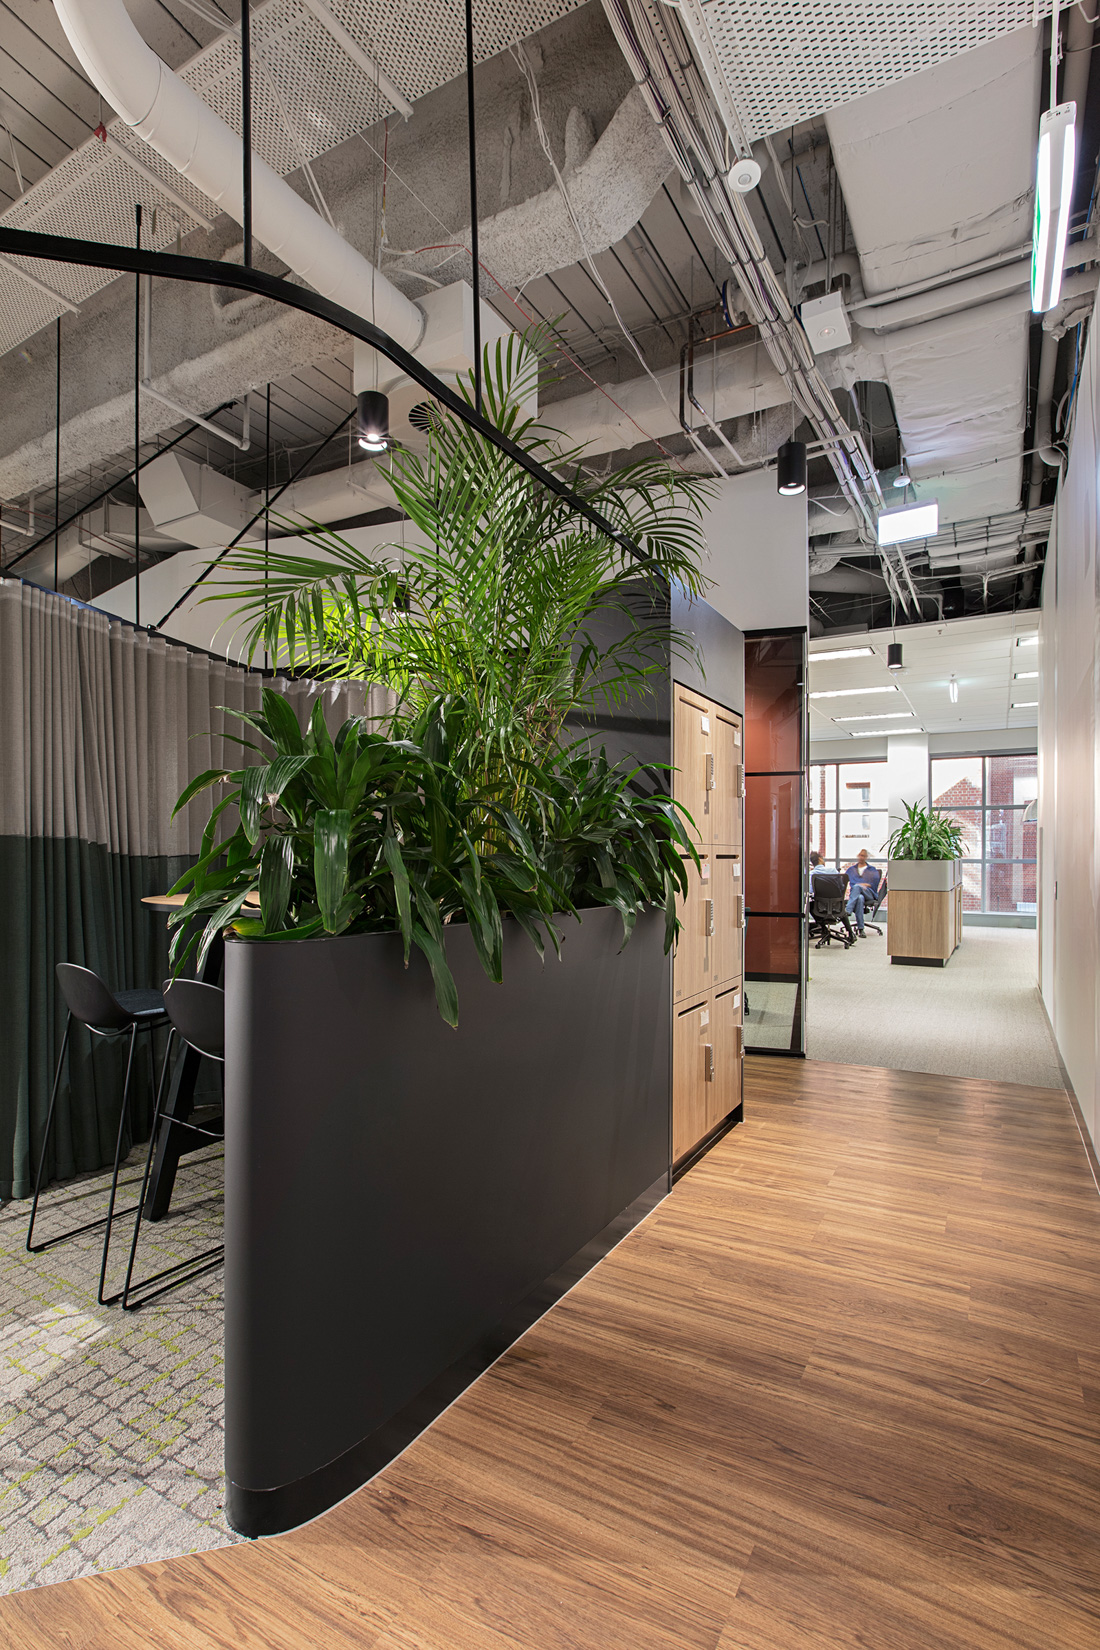 Melbourne office fit out, custom joinery and lockers created by ISM Interiors for JLL